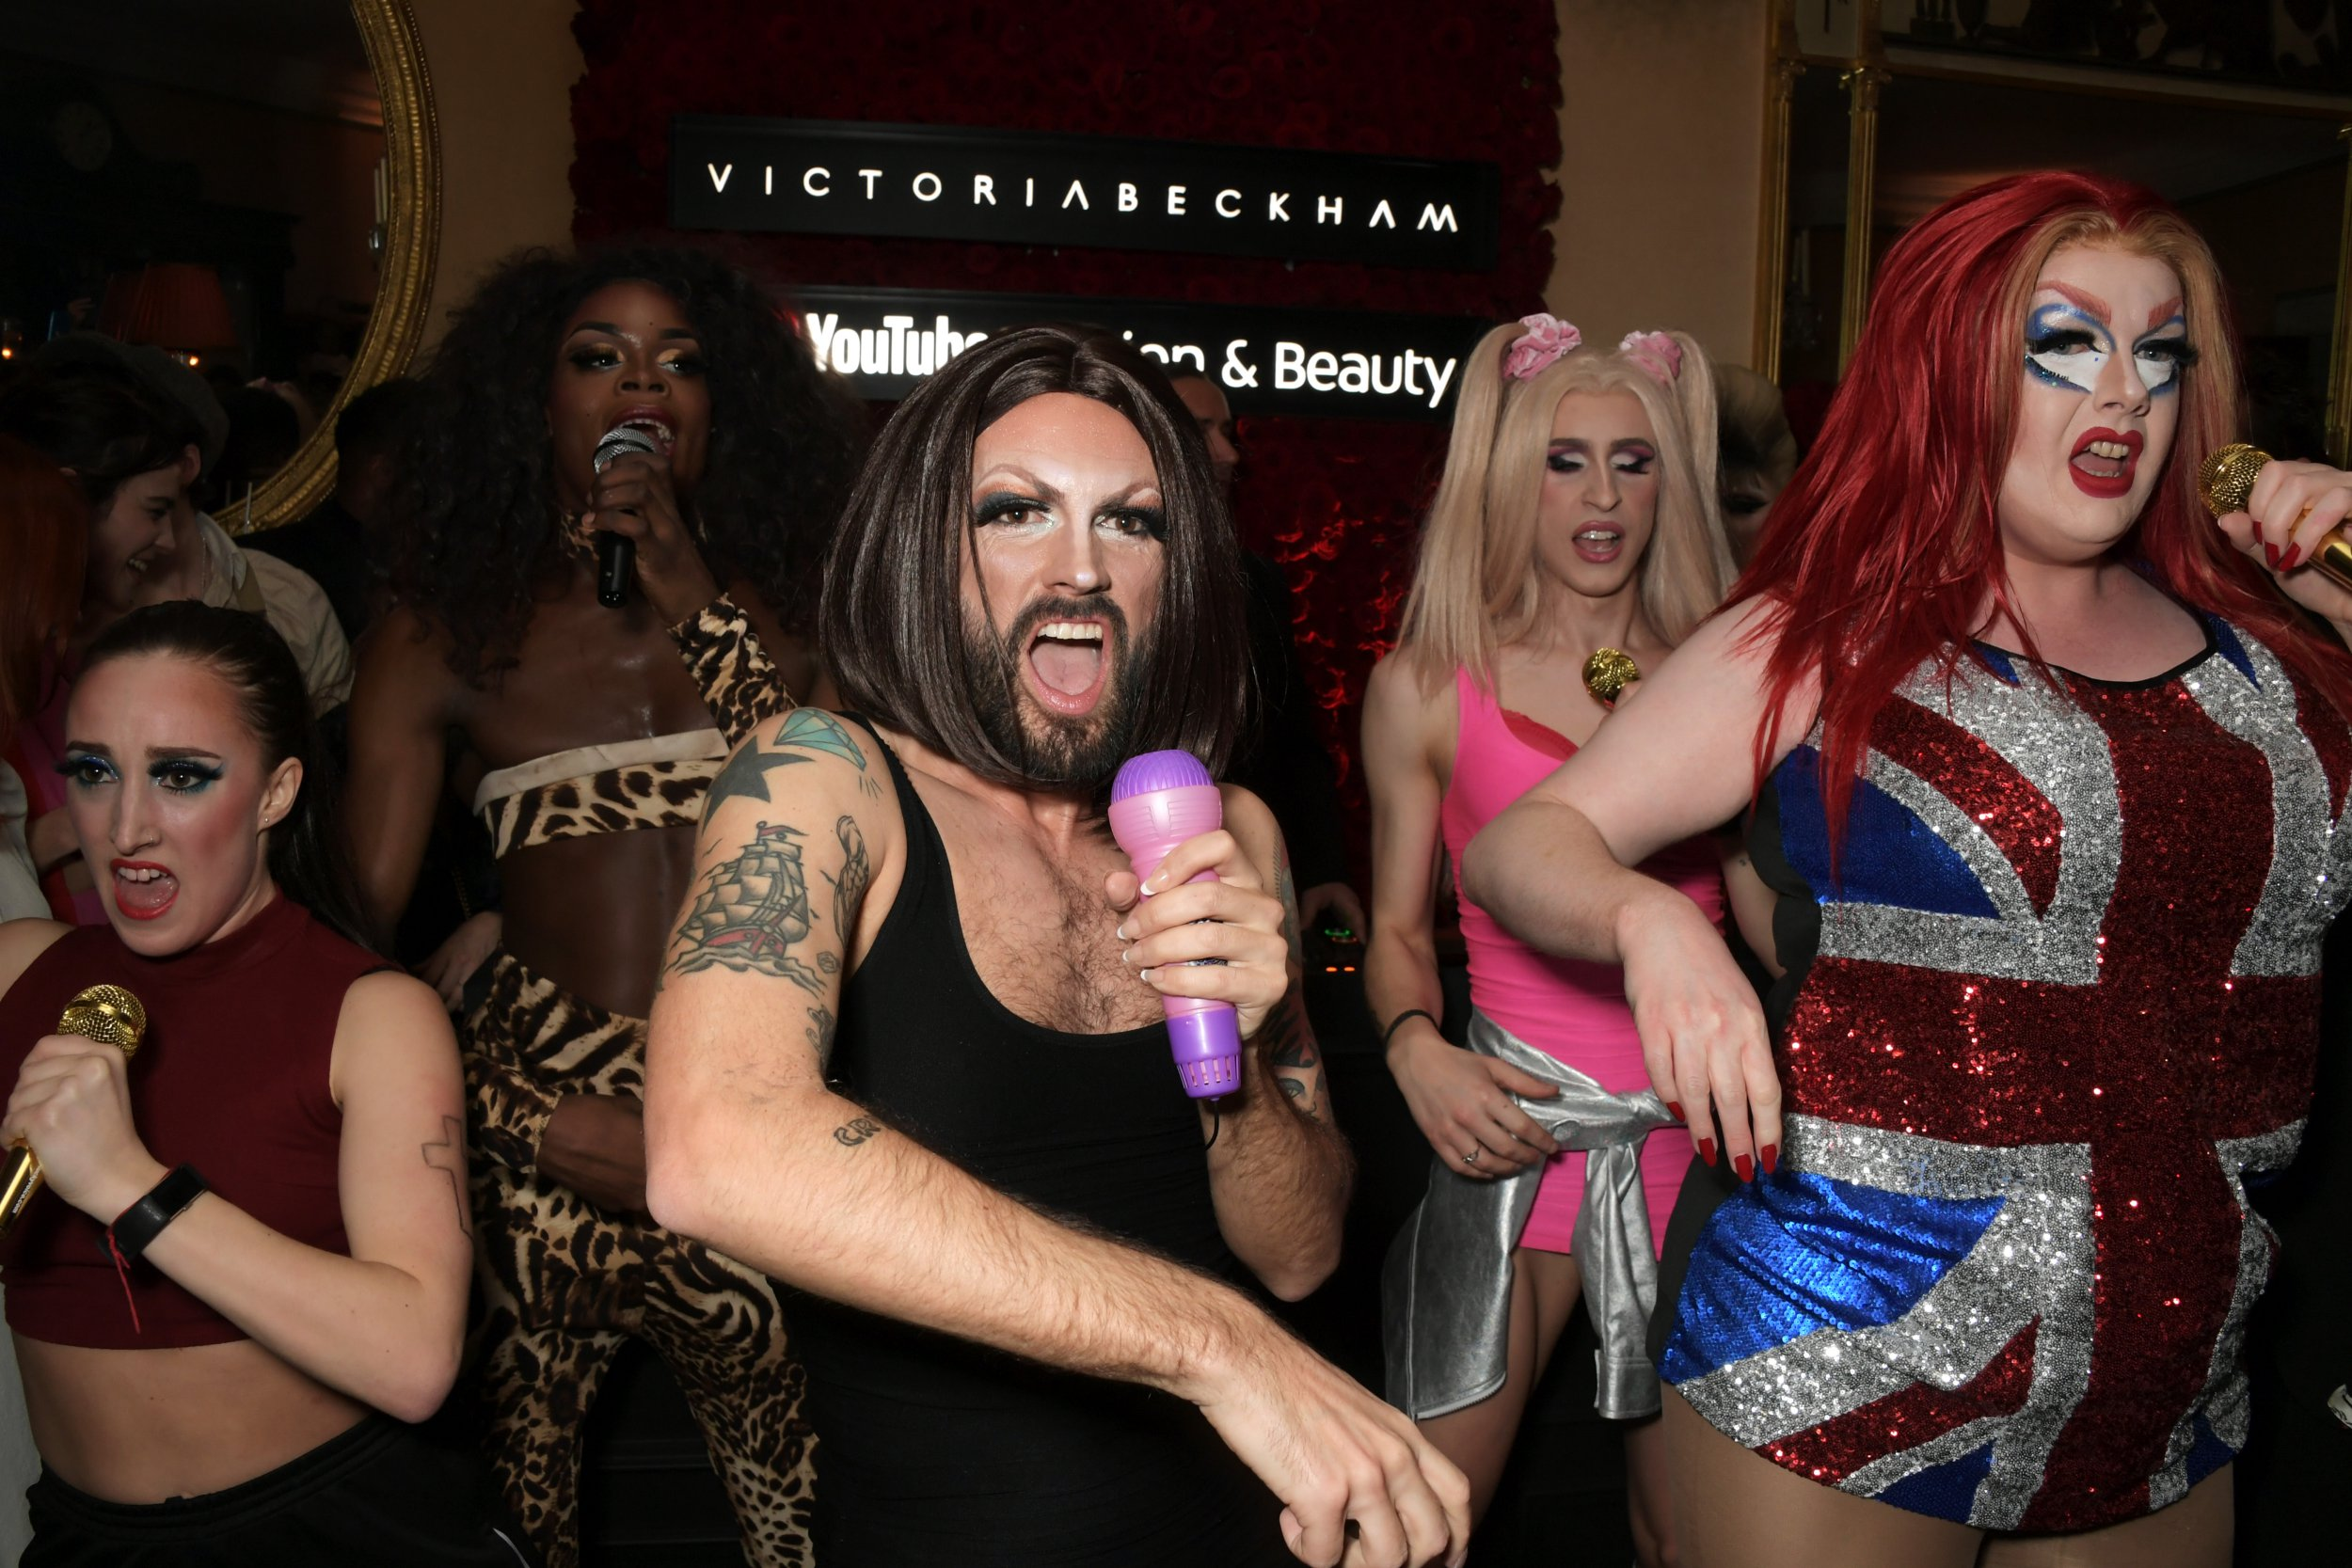 LONDON, ENGLAND - FEBRUARY 17: The Spice Gurrls perform at the Victoria Beckham x YouTube Fashion & Beauty after party at London Fashion Week hosted by Derek Blasberg & David Beckham at Mark's Club on February 17, 2019 in London, England. (Photo by David M. Benett/Dave Benett/Getty Images for YouTube)